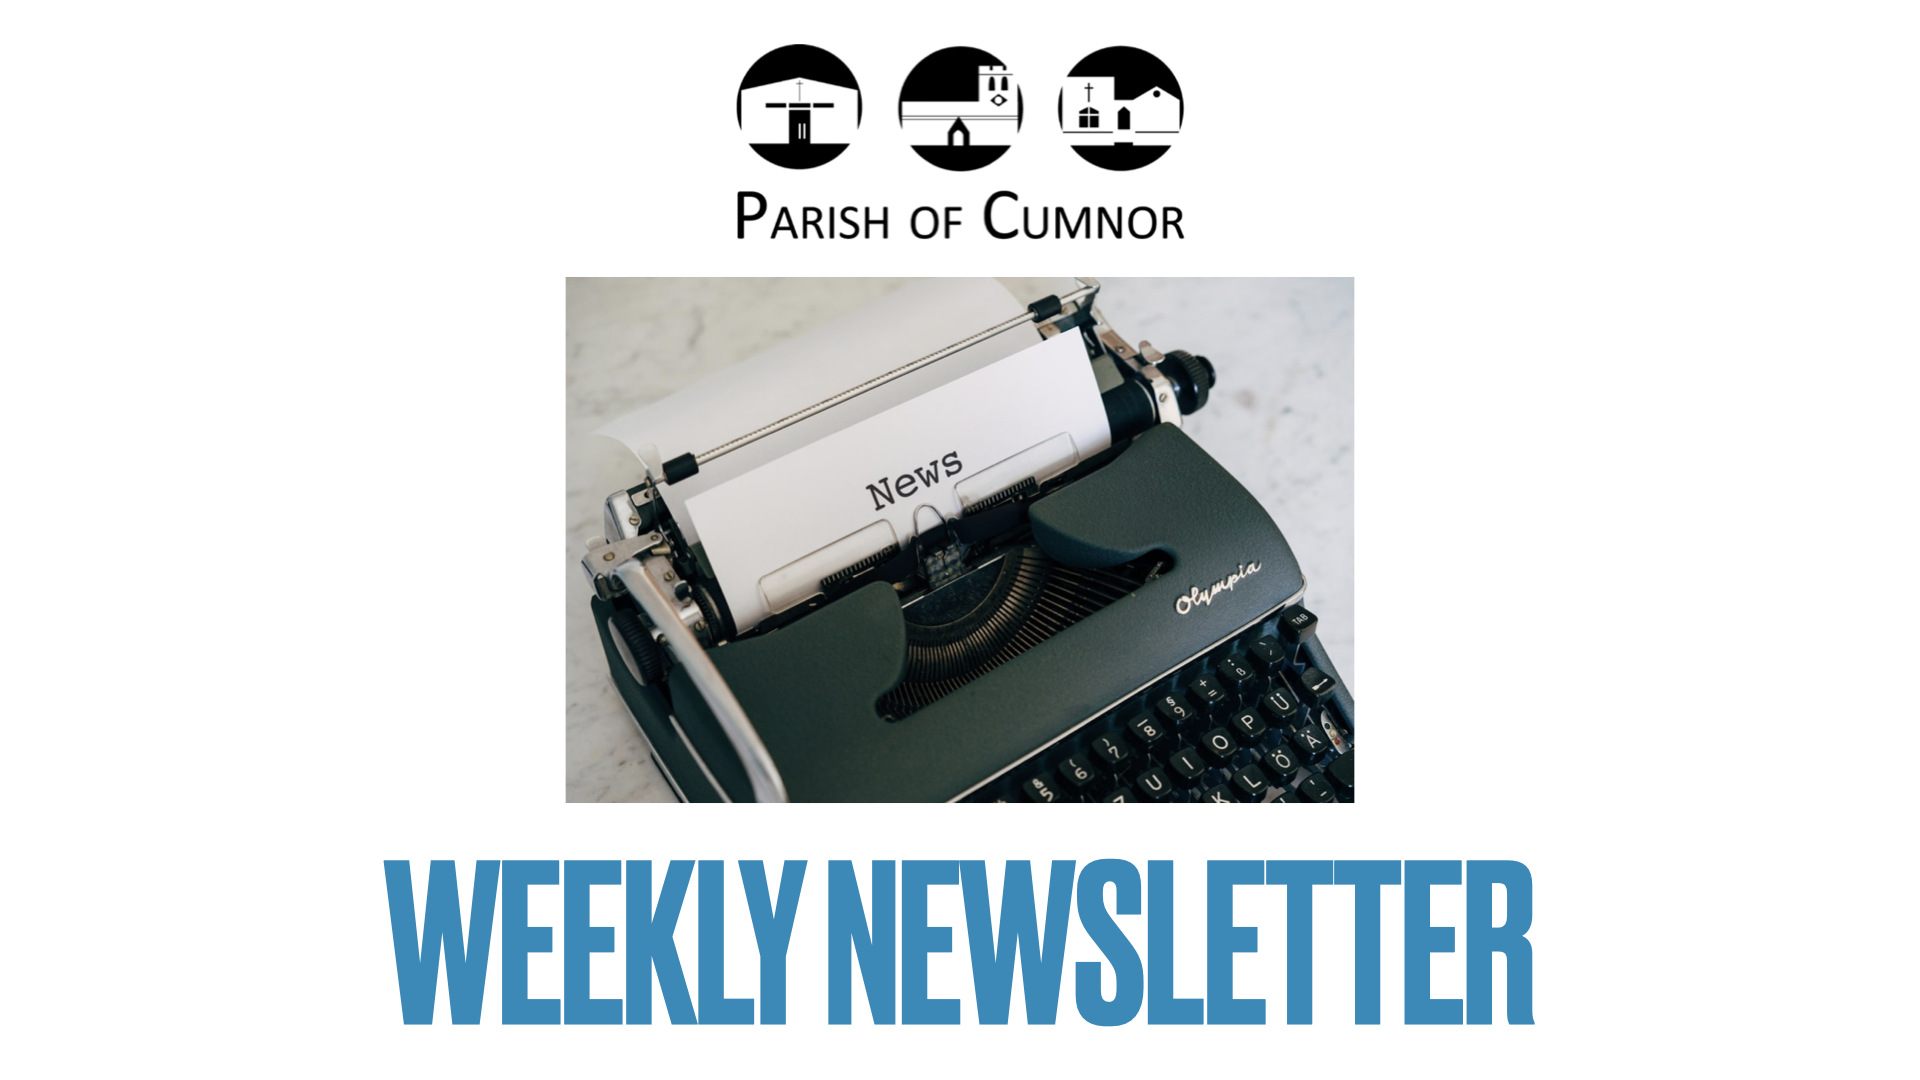 Newsletter for May 2nd 2021